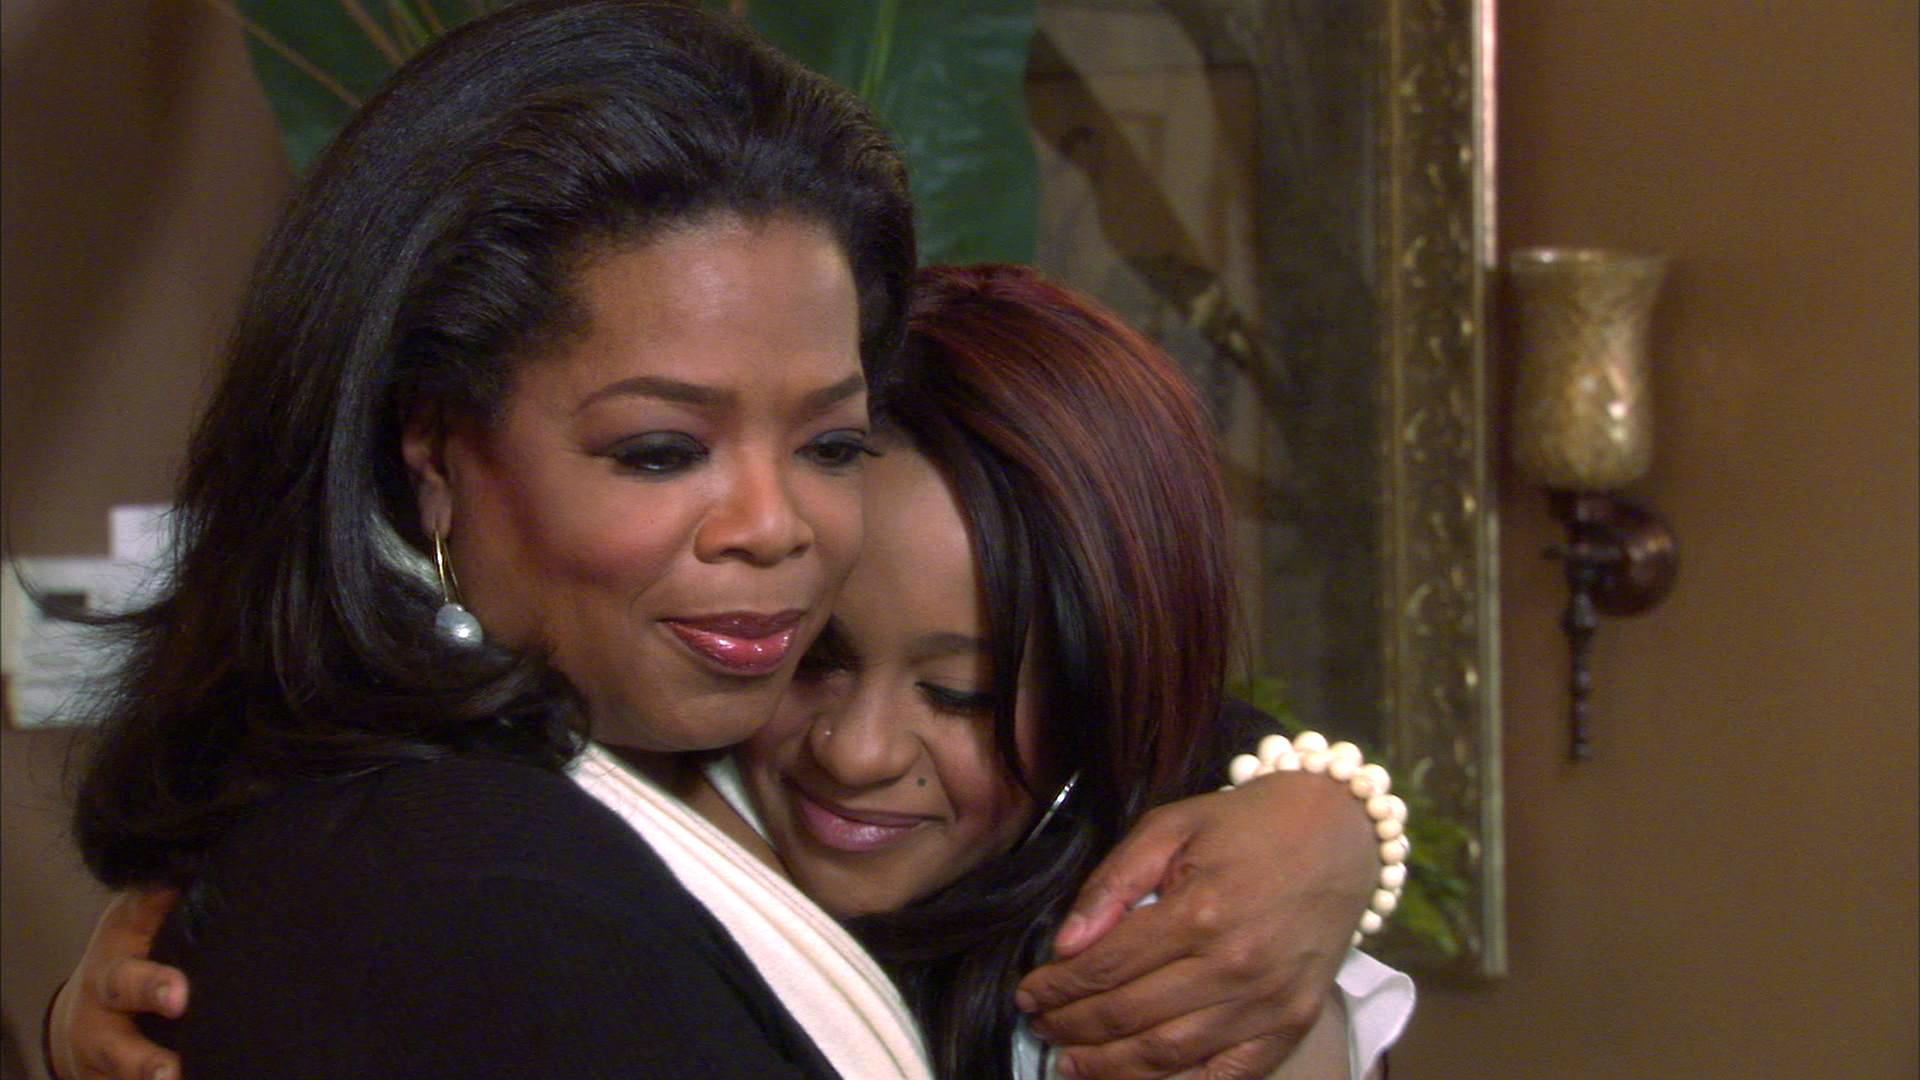 """FILE - An undated image from video originally released by Harpo, Inc., shows host Oprah Winfrey, left, embracing Bobbi Kristina, daughter of the late singer Whitney Houston during an interview in Atlanta, Ga. The exclusive interview was shown on """"Oprah's Next Chapter,"""" on the OWN network on March 11, 2012. (AP Photo/Harpo, Inc., file)"""